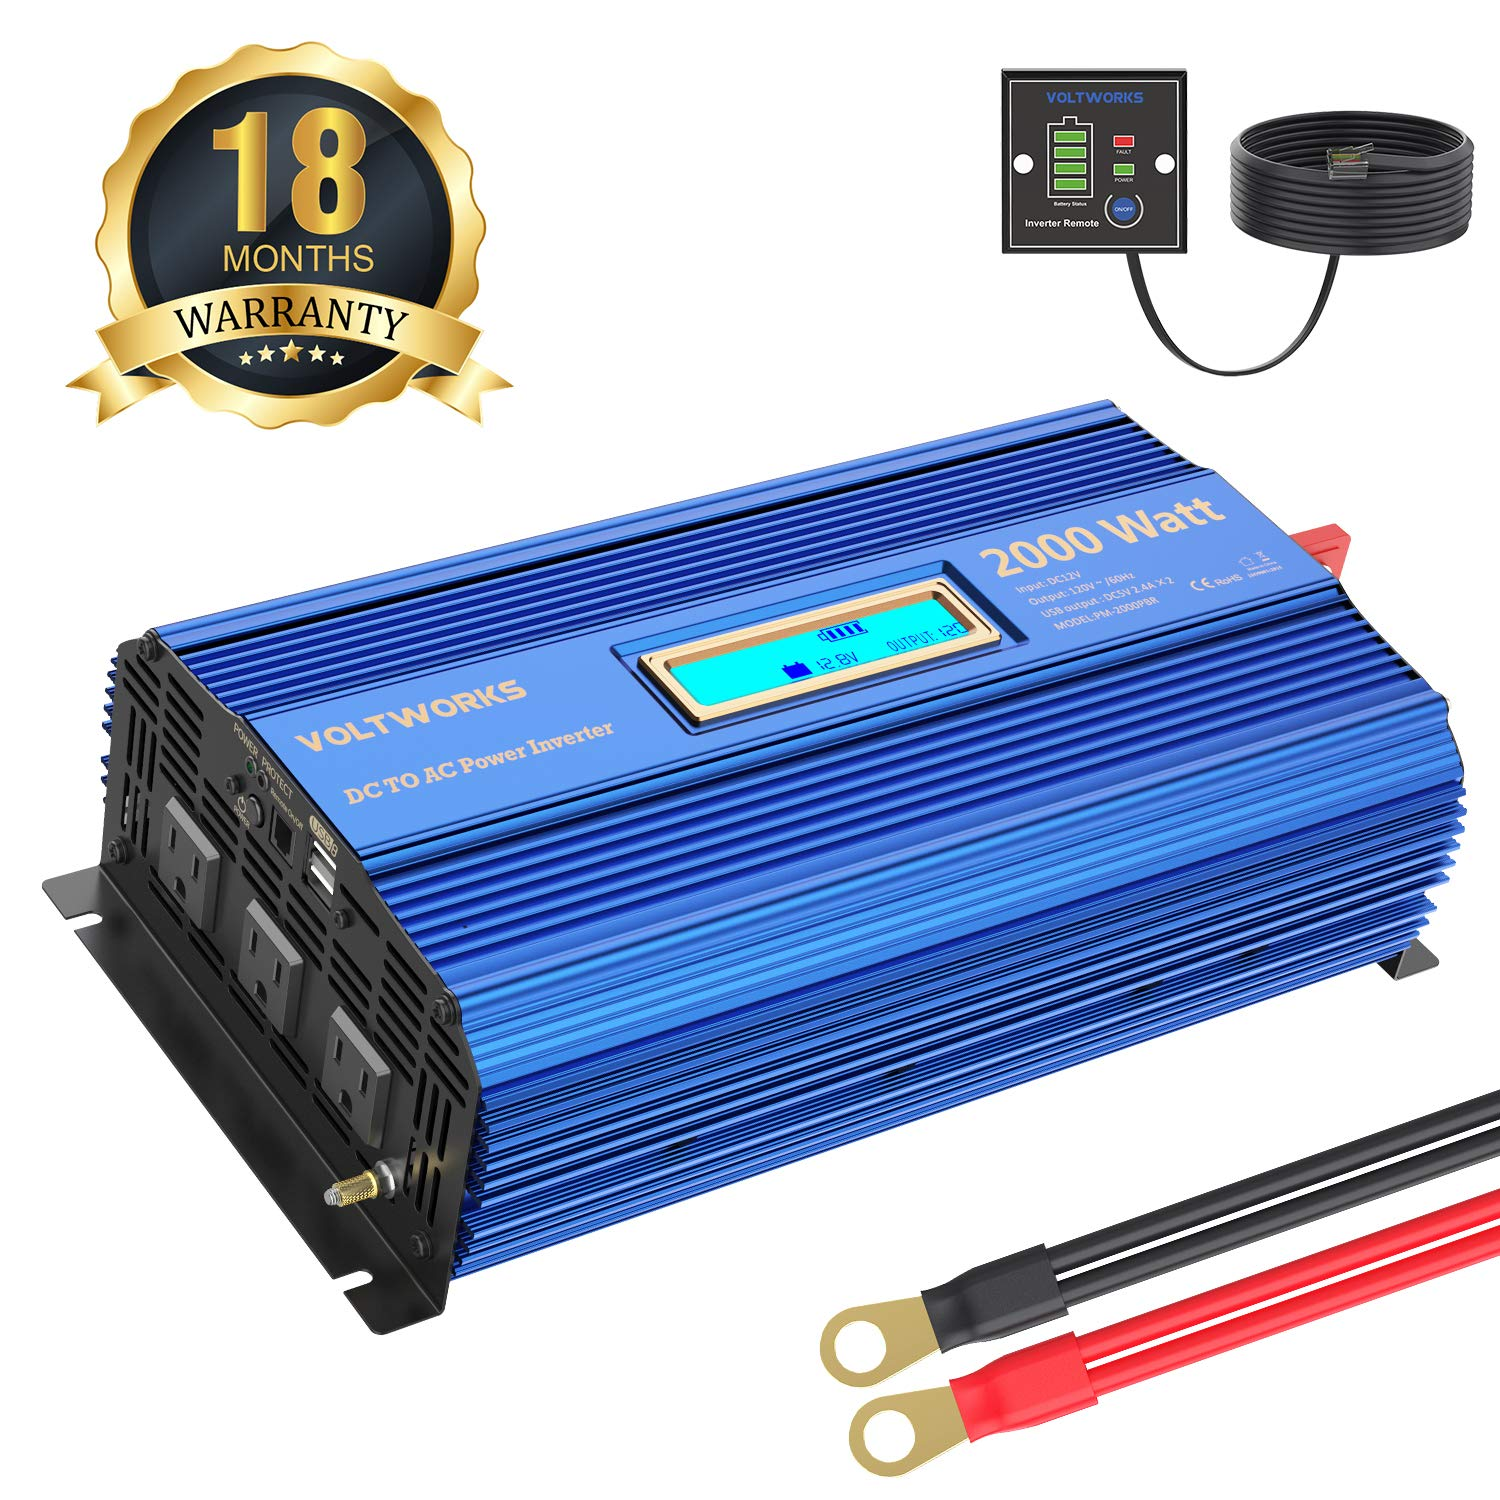 Best Power Inverter For Trucks - Our Top 5 Reviewed 2020 3